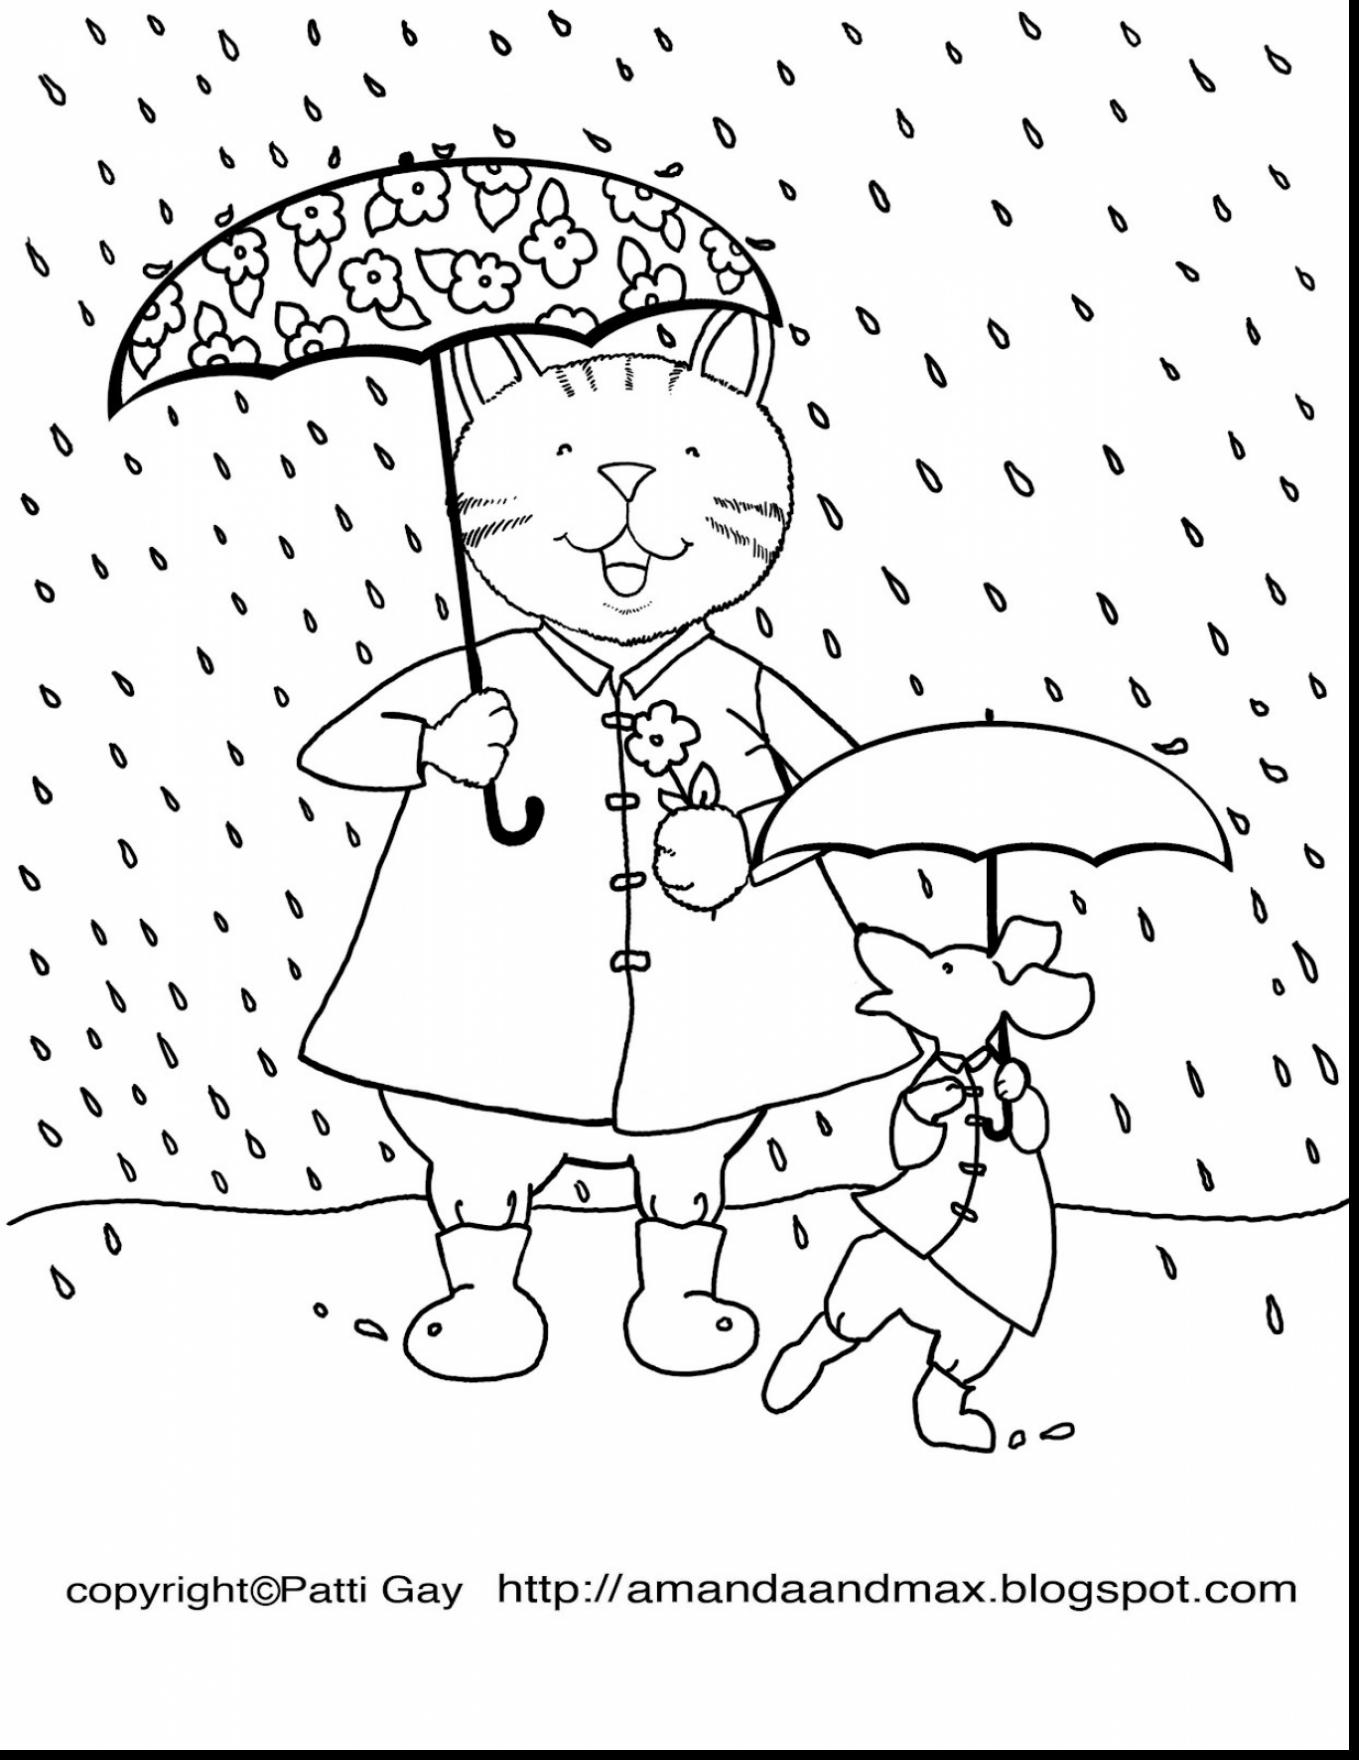 Rainy Weather Coloring Pages At Getdrawings